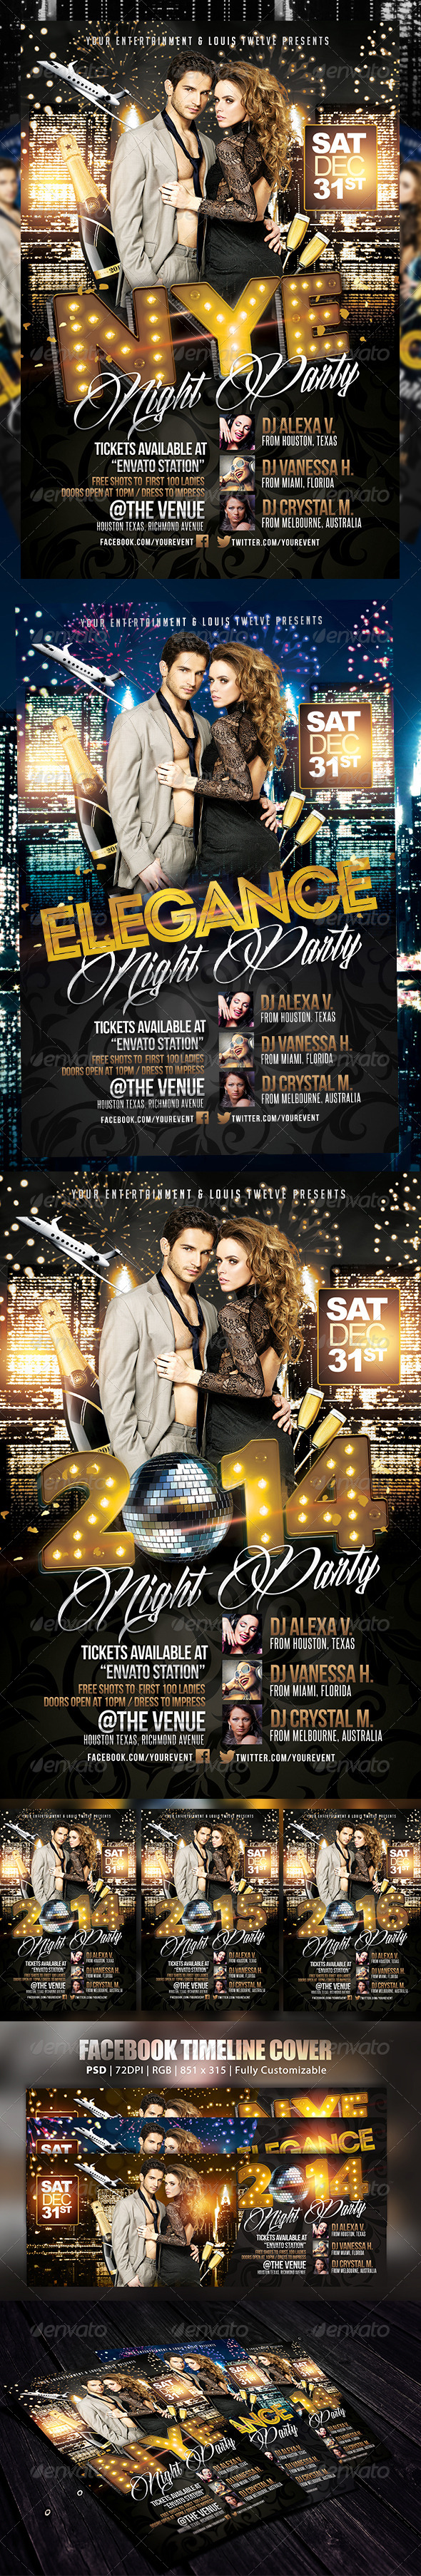 New Year Eve or Elegance Party | Flyer + FB Cover - Holidays Events